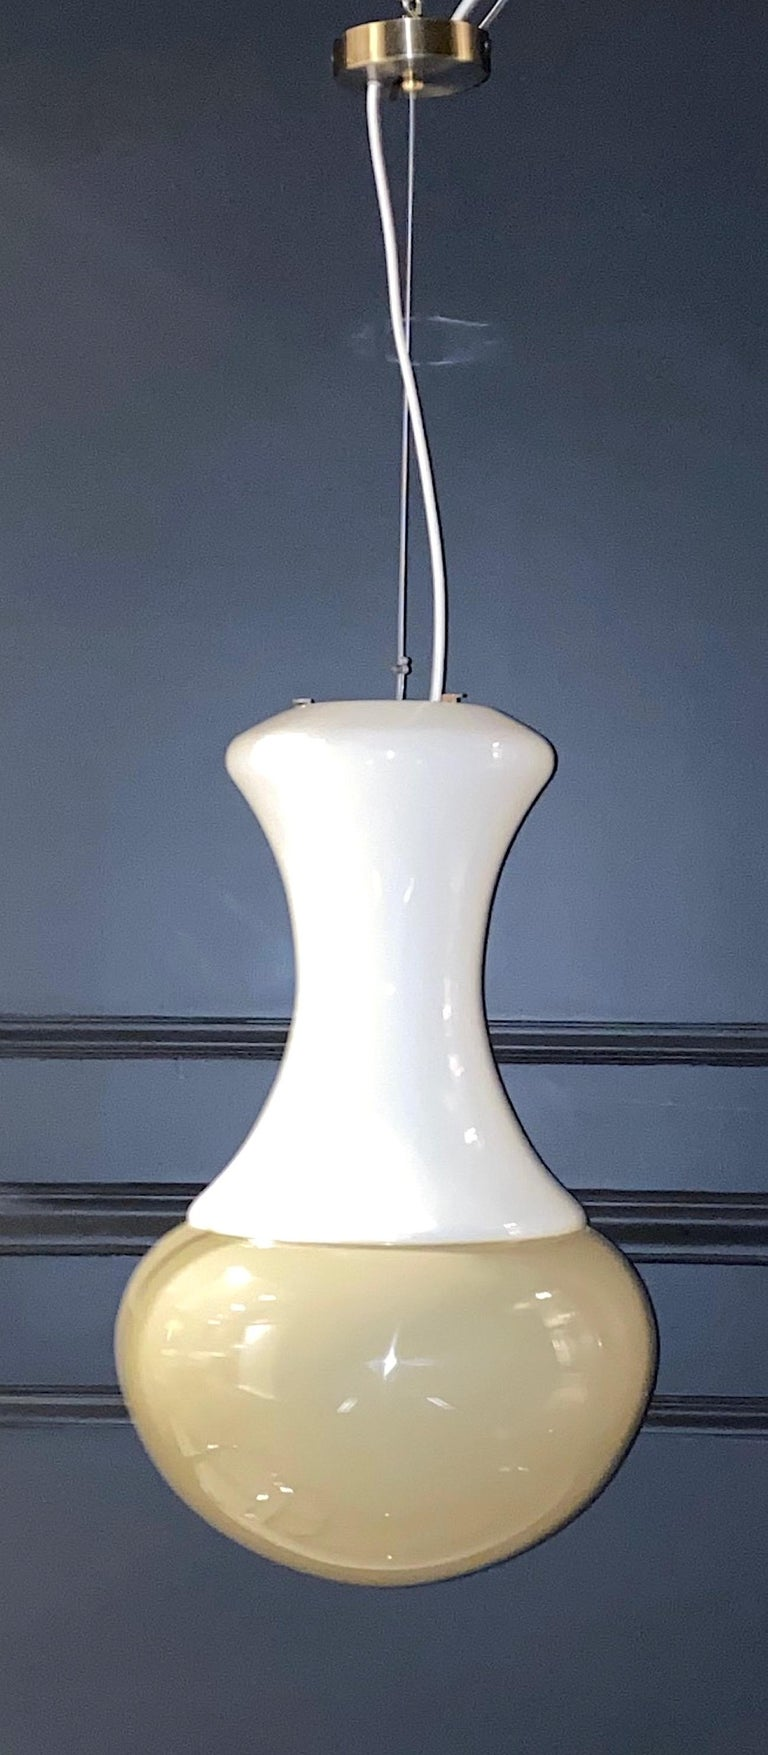 A clean and elegant design Italian Pendant light, circa 1970. The pendant is comprised of two pieces of hand blown glass made on Murano. The top is opaque white glass and the bottom is opaque taupe/beige color glass. The two pieces are glued